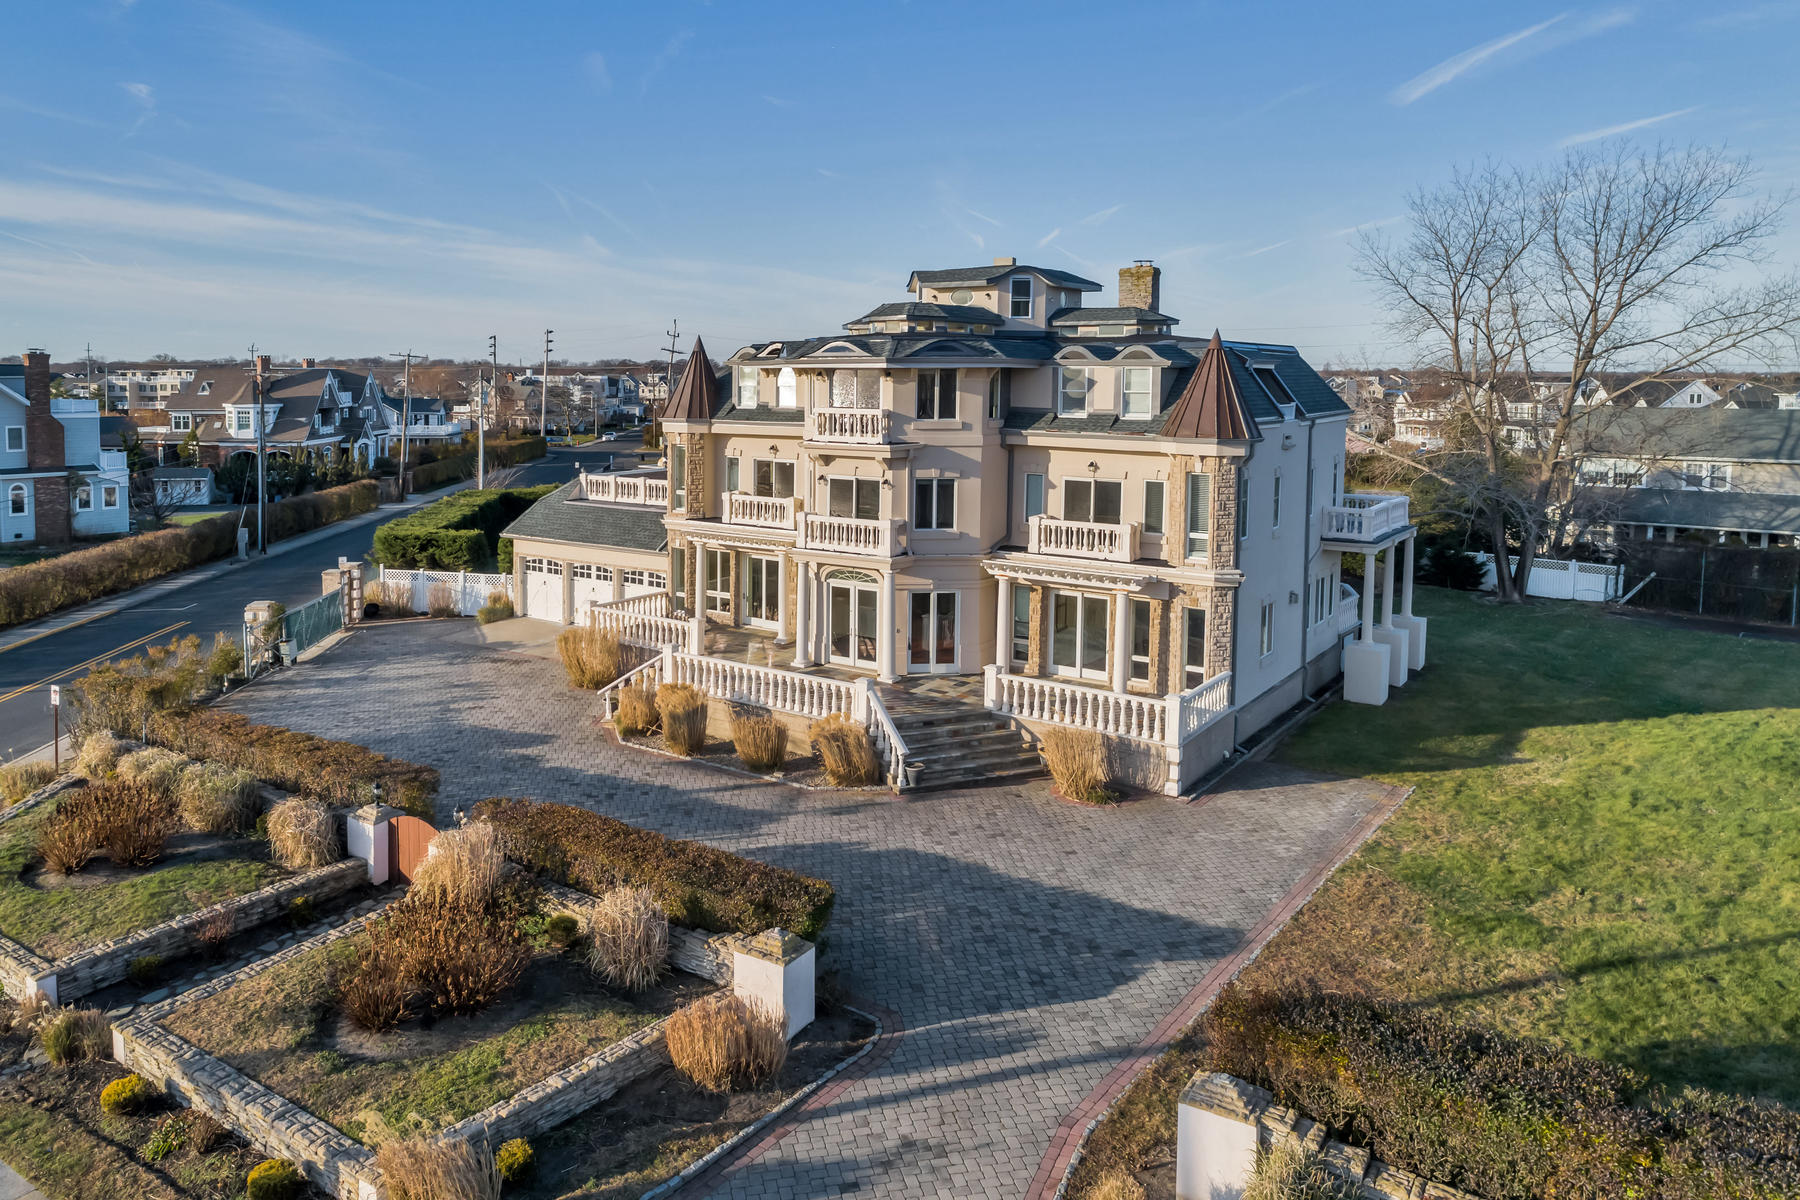 Single Family Homes for Sale at Spectacular Ocean Views 32 Ocean Avenue Monmouth Beach, New Jersey 07750 United States